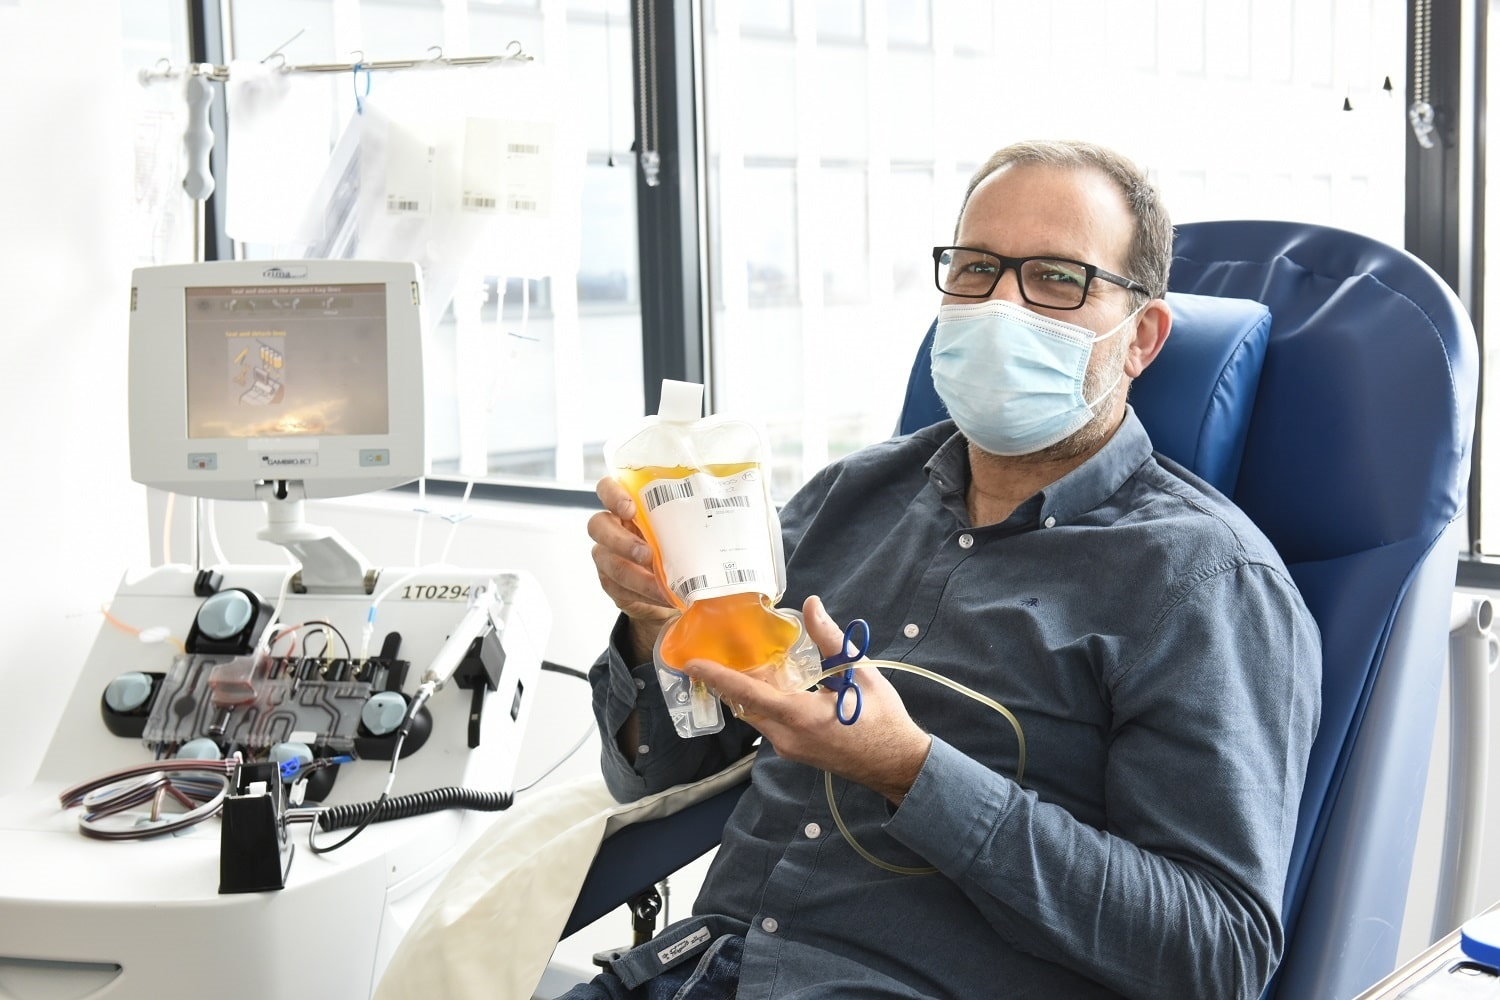 A man sits in a donor chair and holds a bag of this plasma